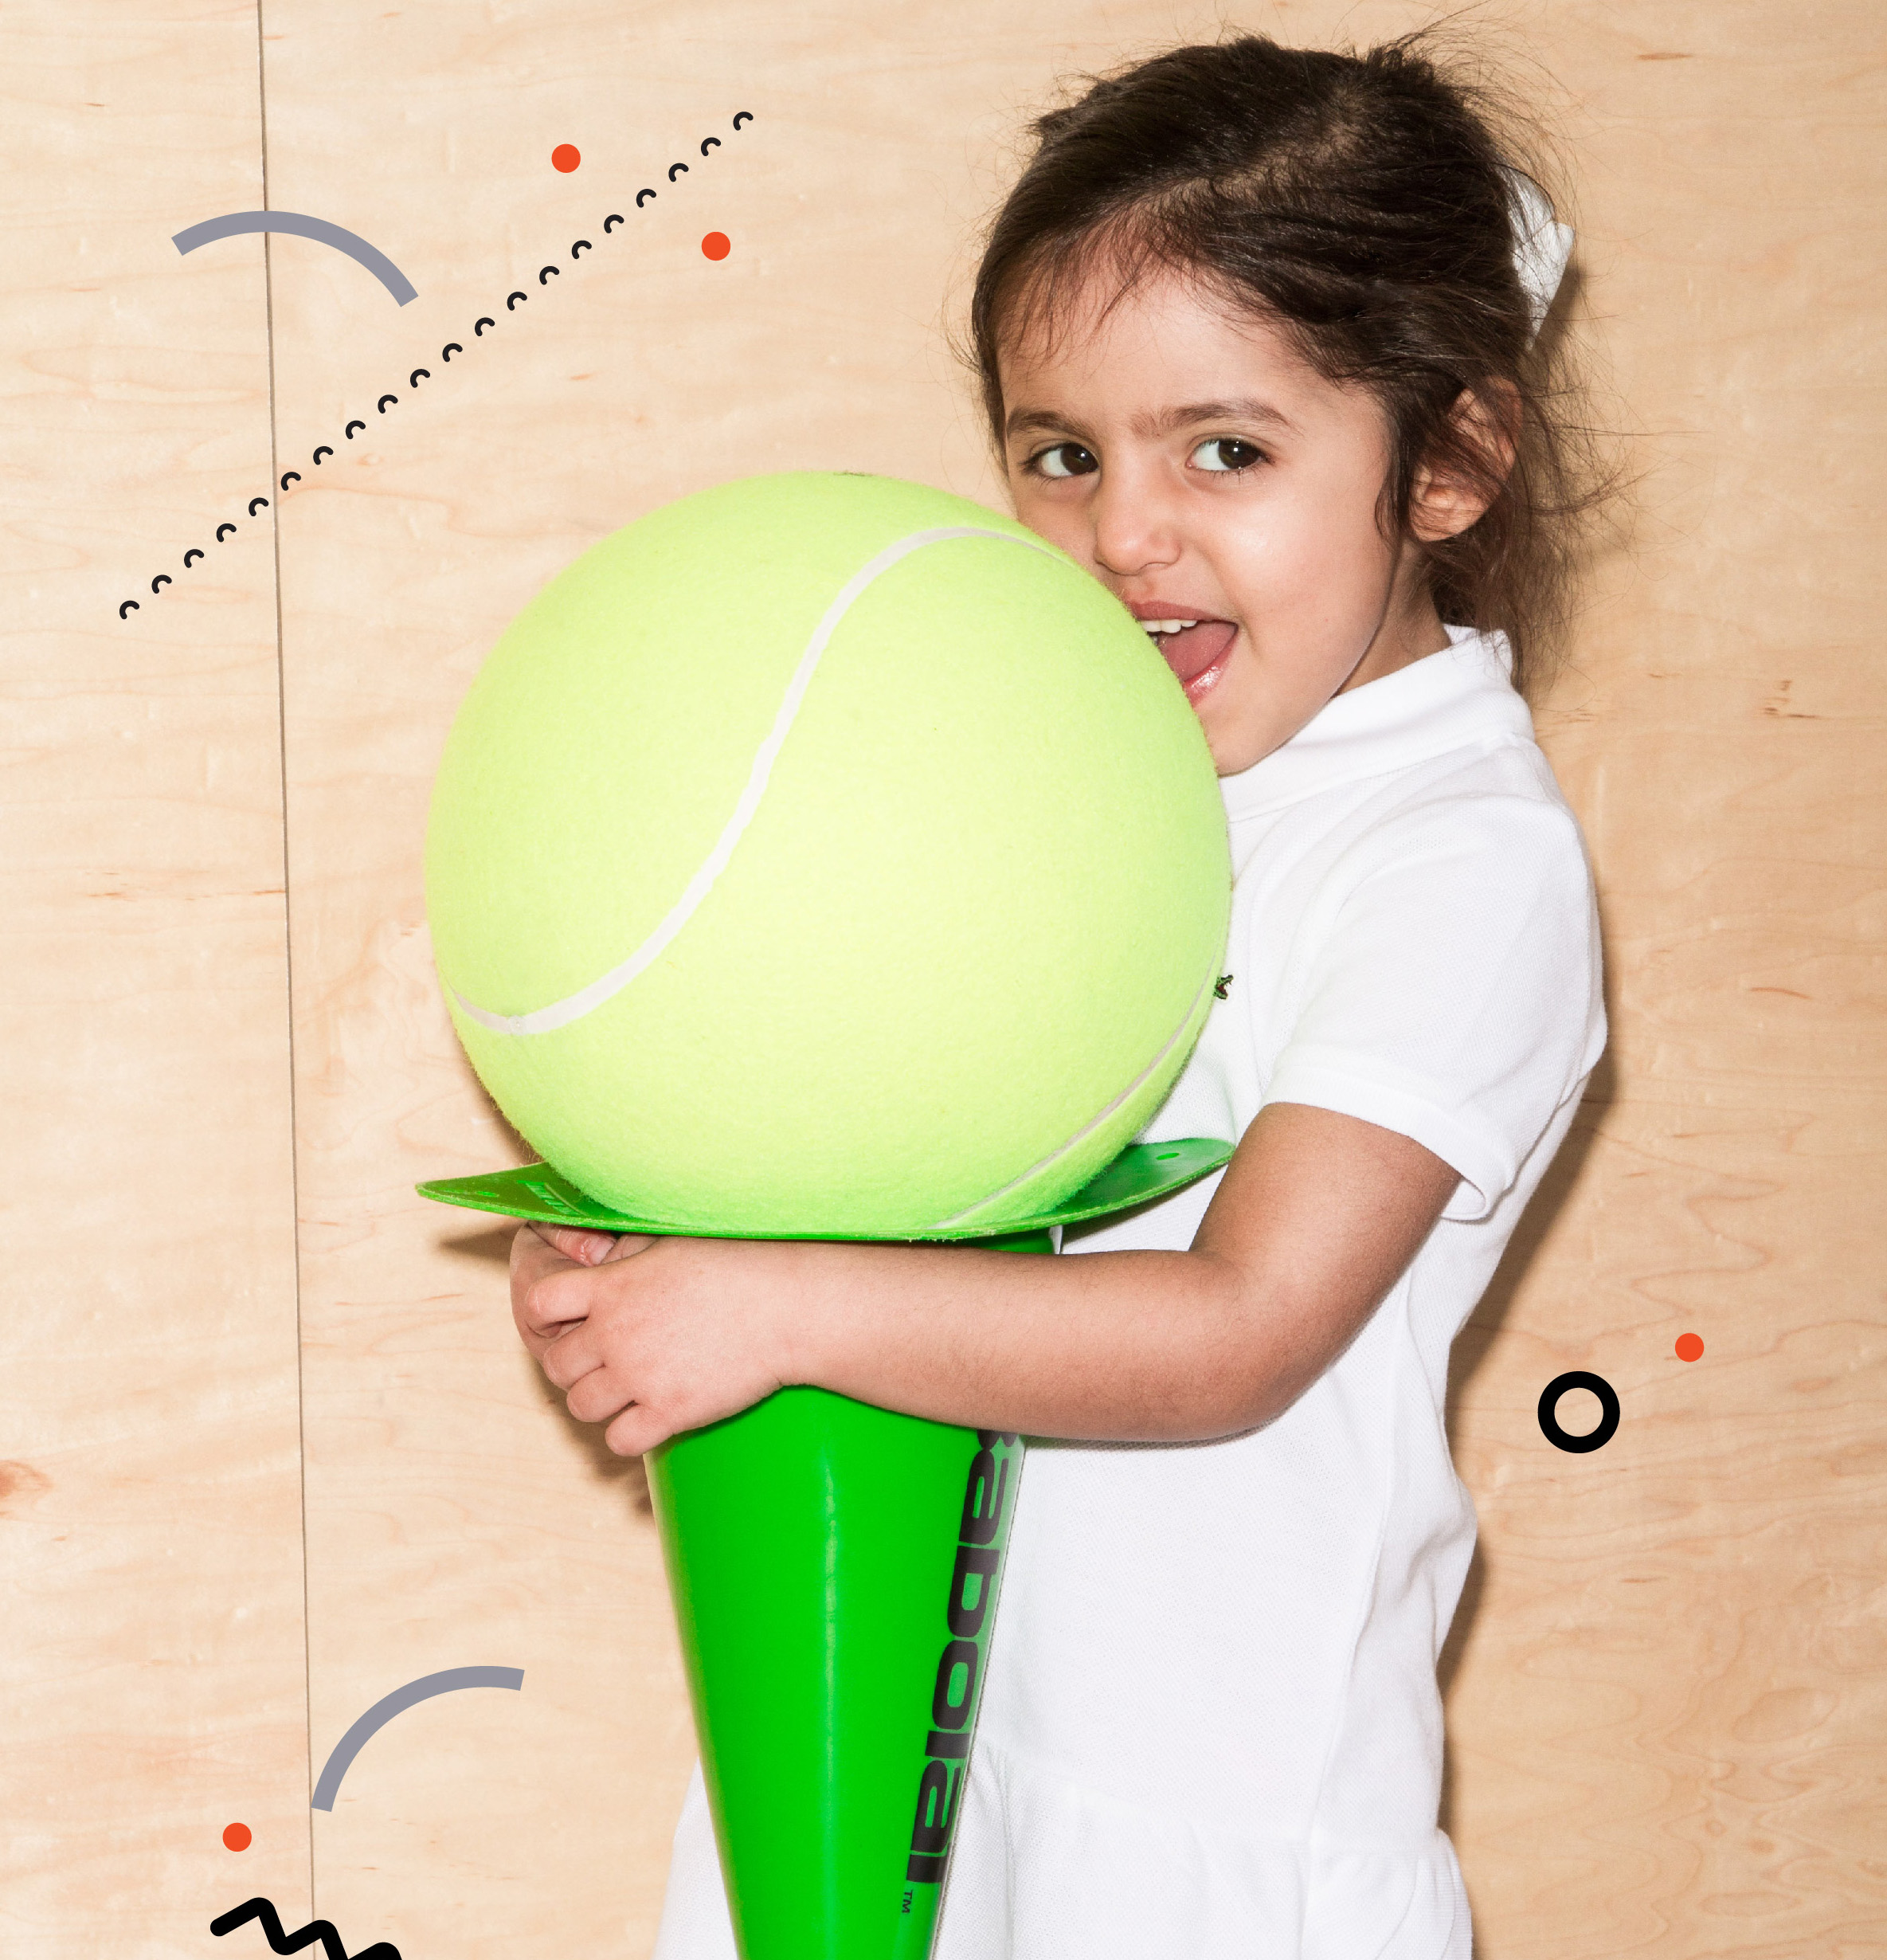 Little girl with giant tennis ball and cone